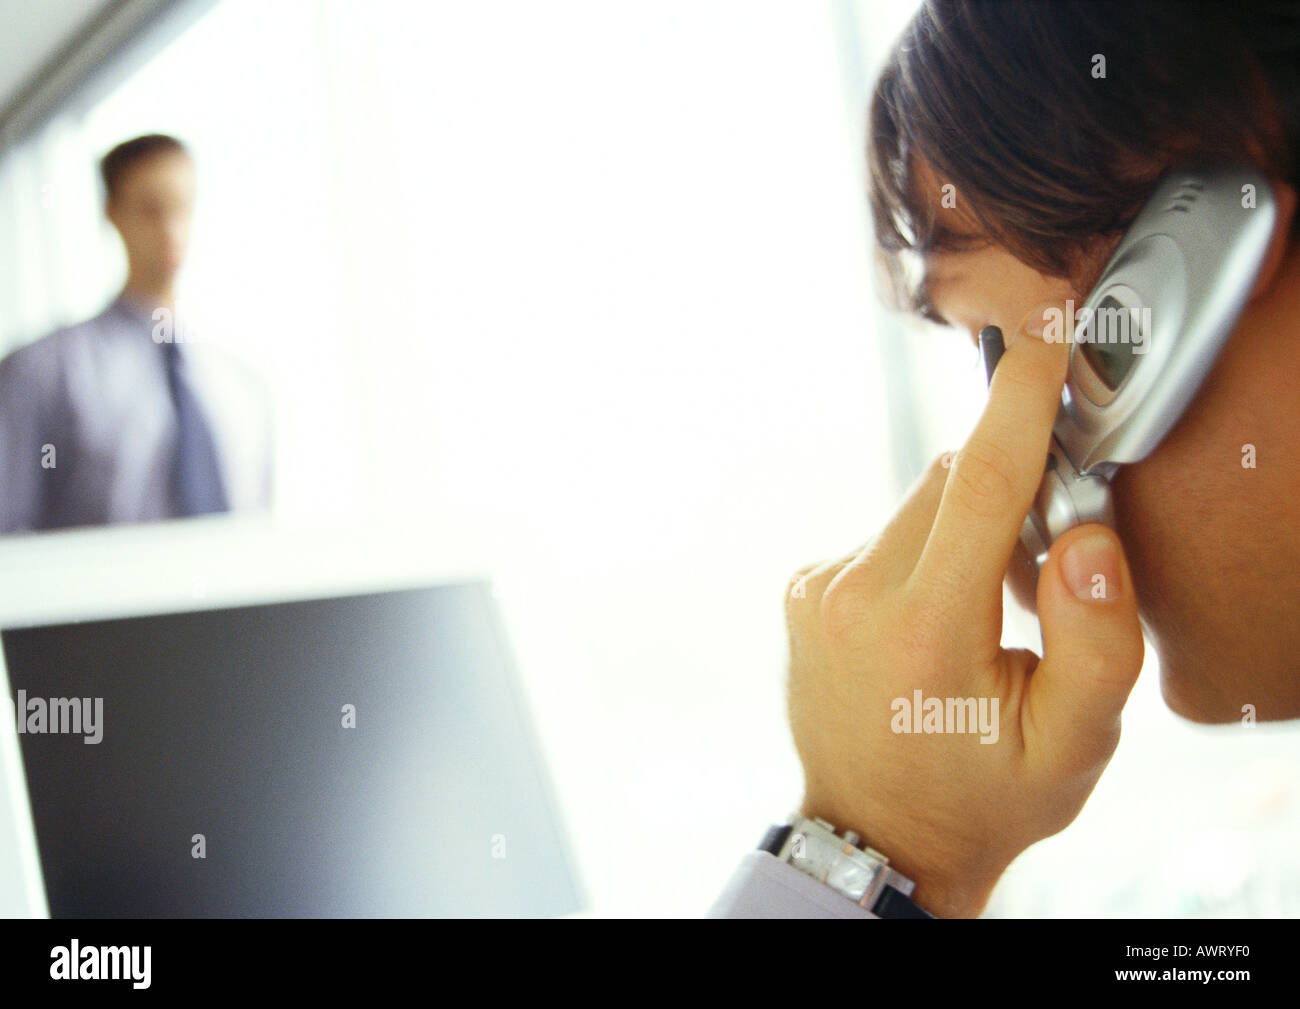 Businessman on cell phone facing computer, side view, close-up - Stock Image